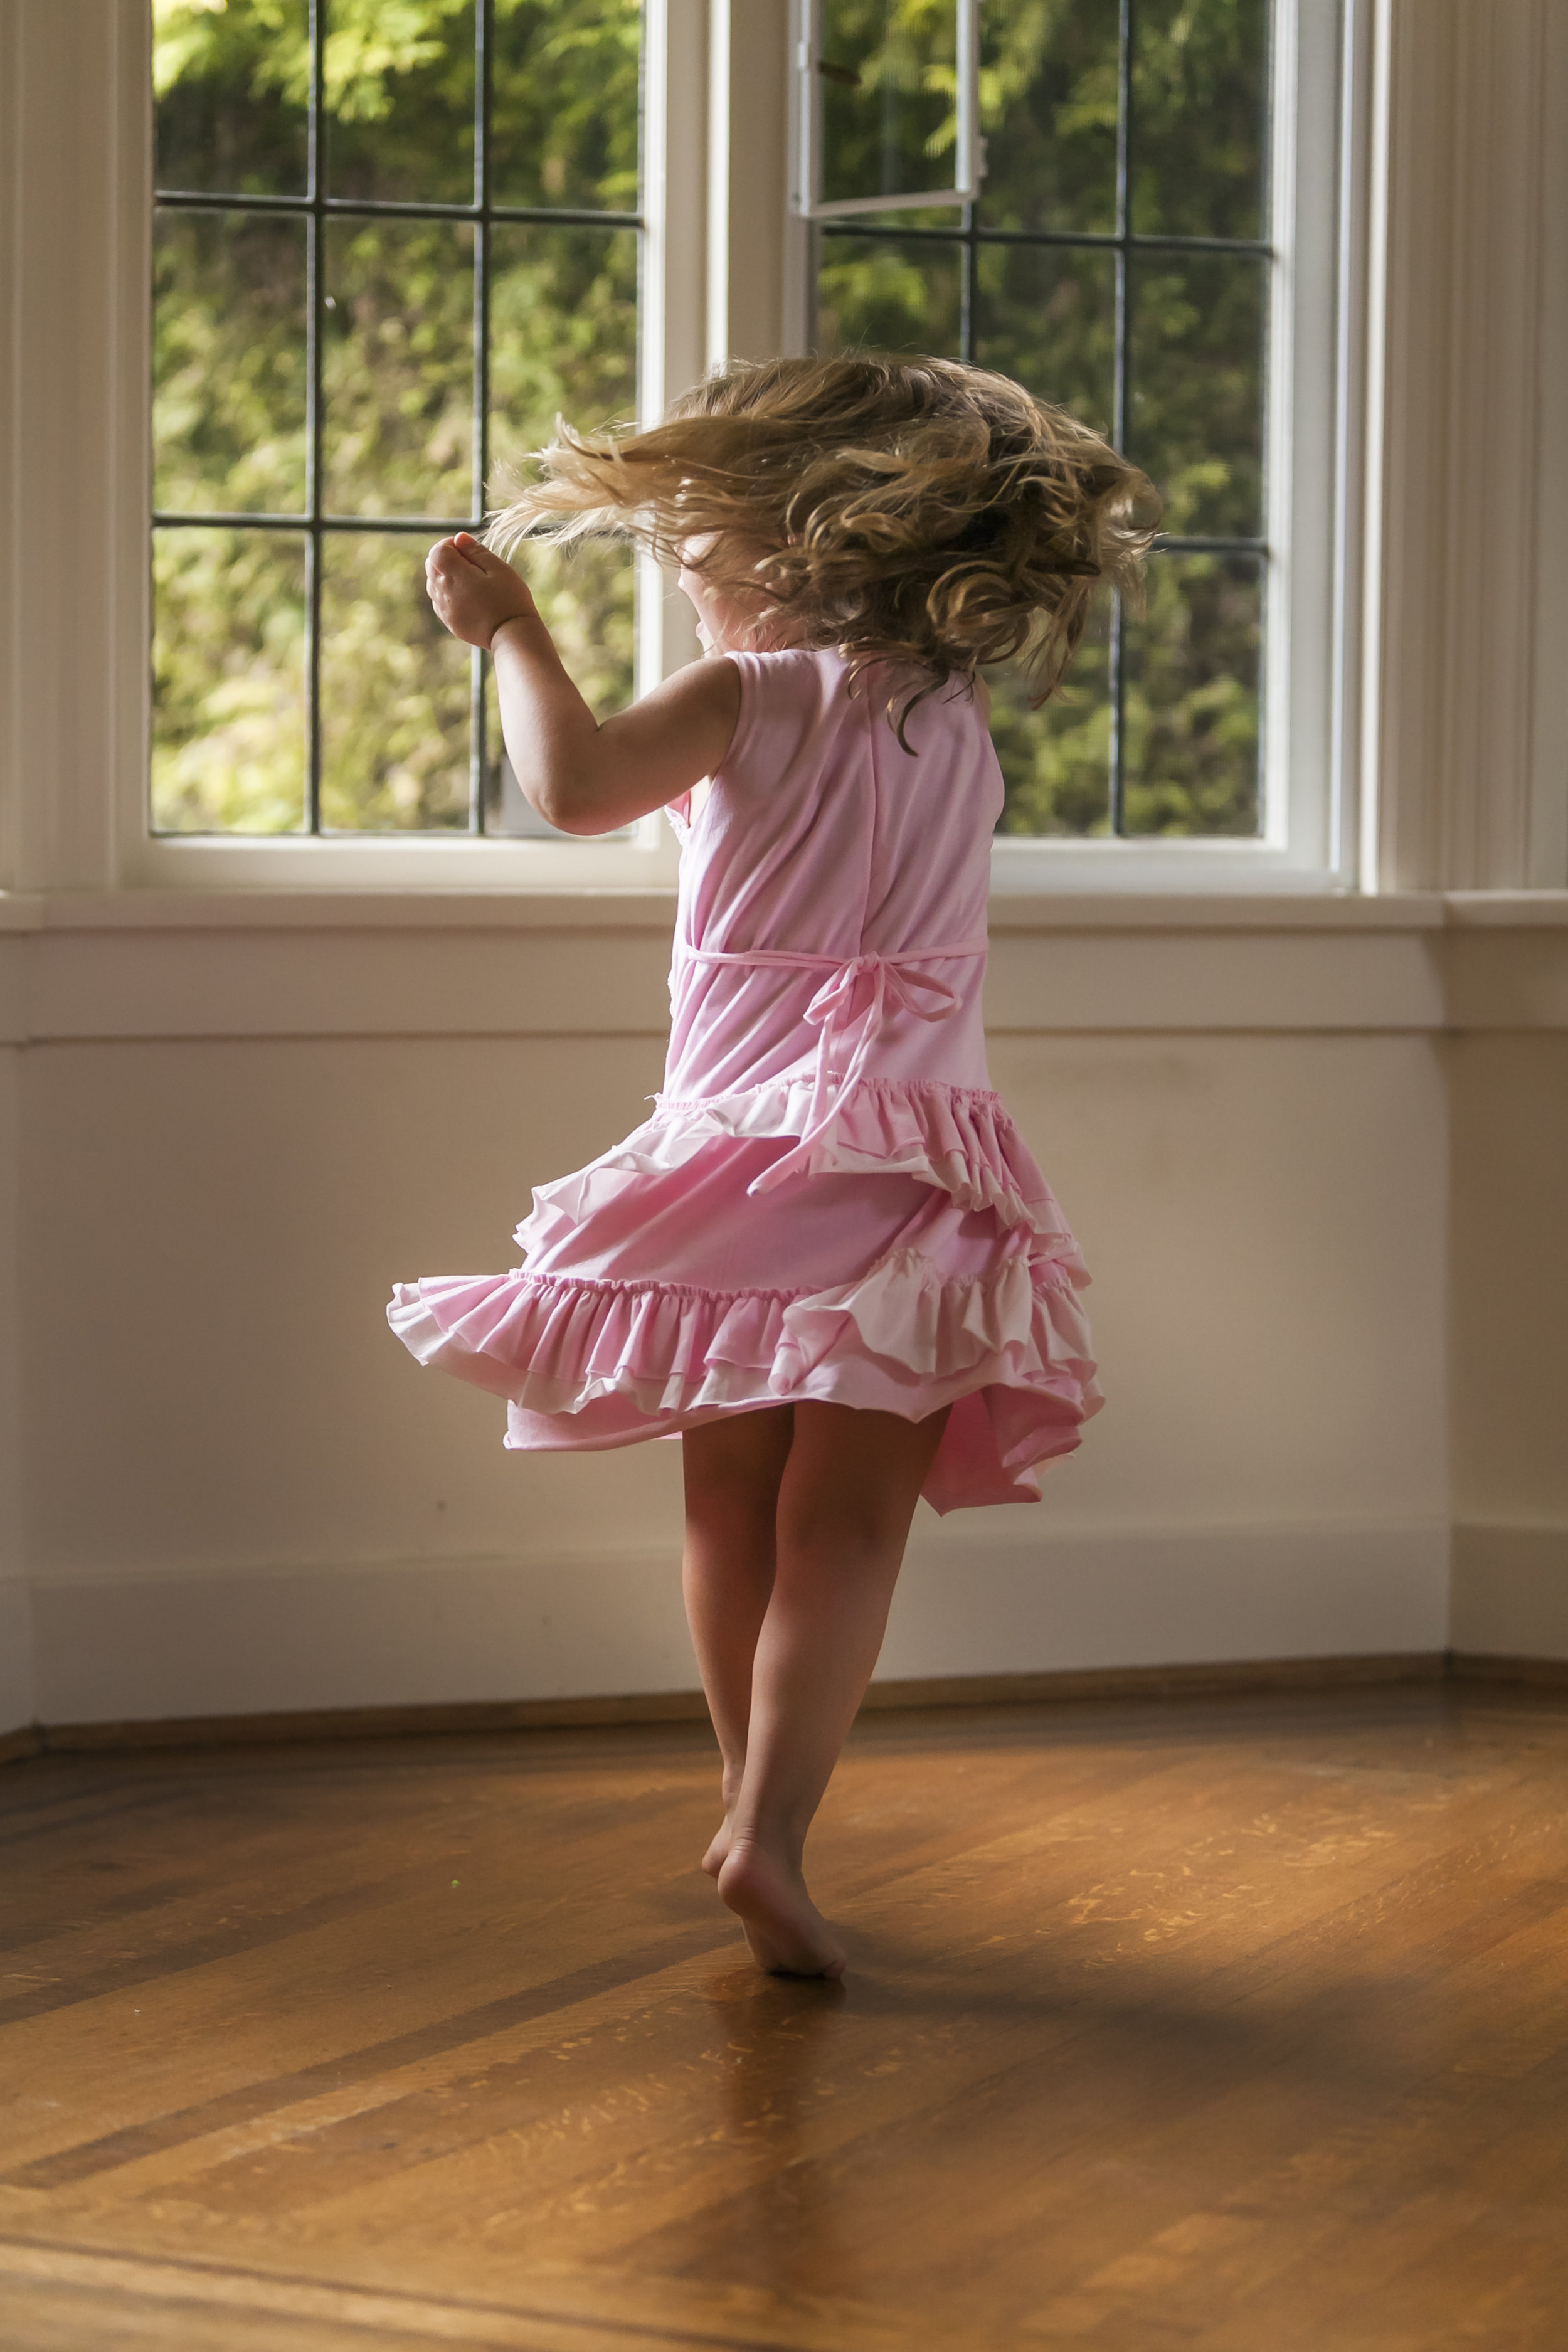 Surrey Family photographer. Vancouver family photographer, klutch Photography, documentary photography, candid photography, twirling girl